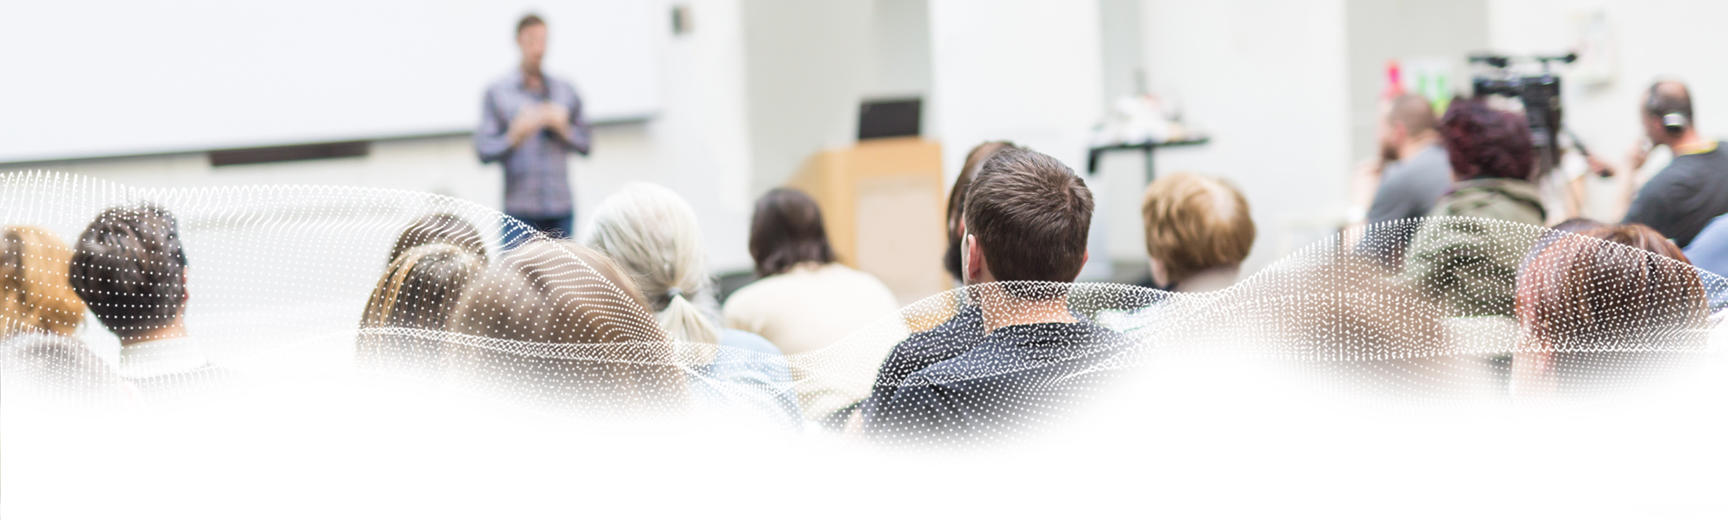 Students in a lecture. Photo credit: Shutterstock